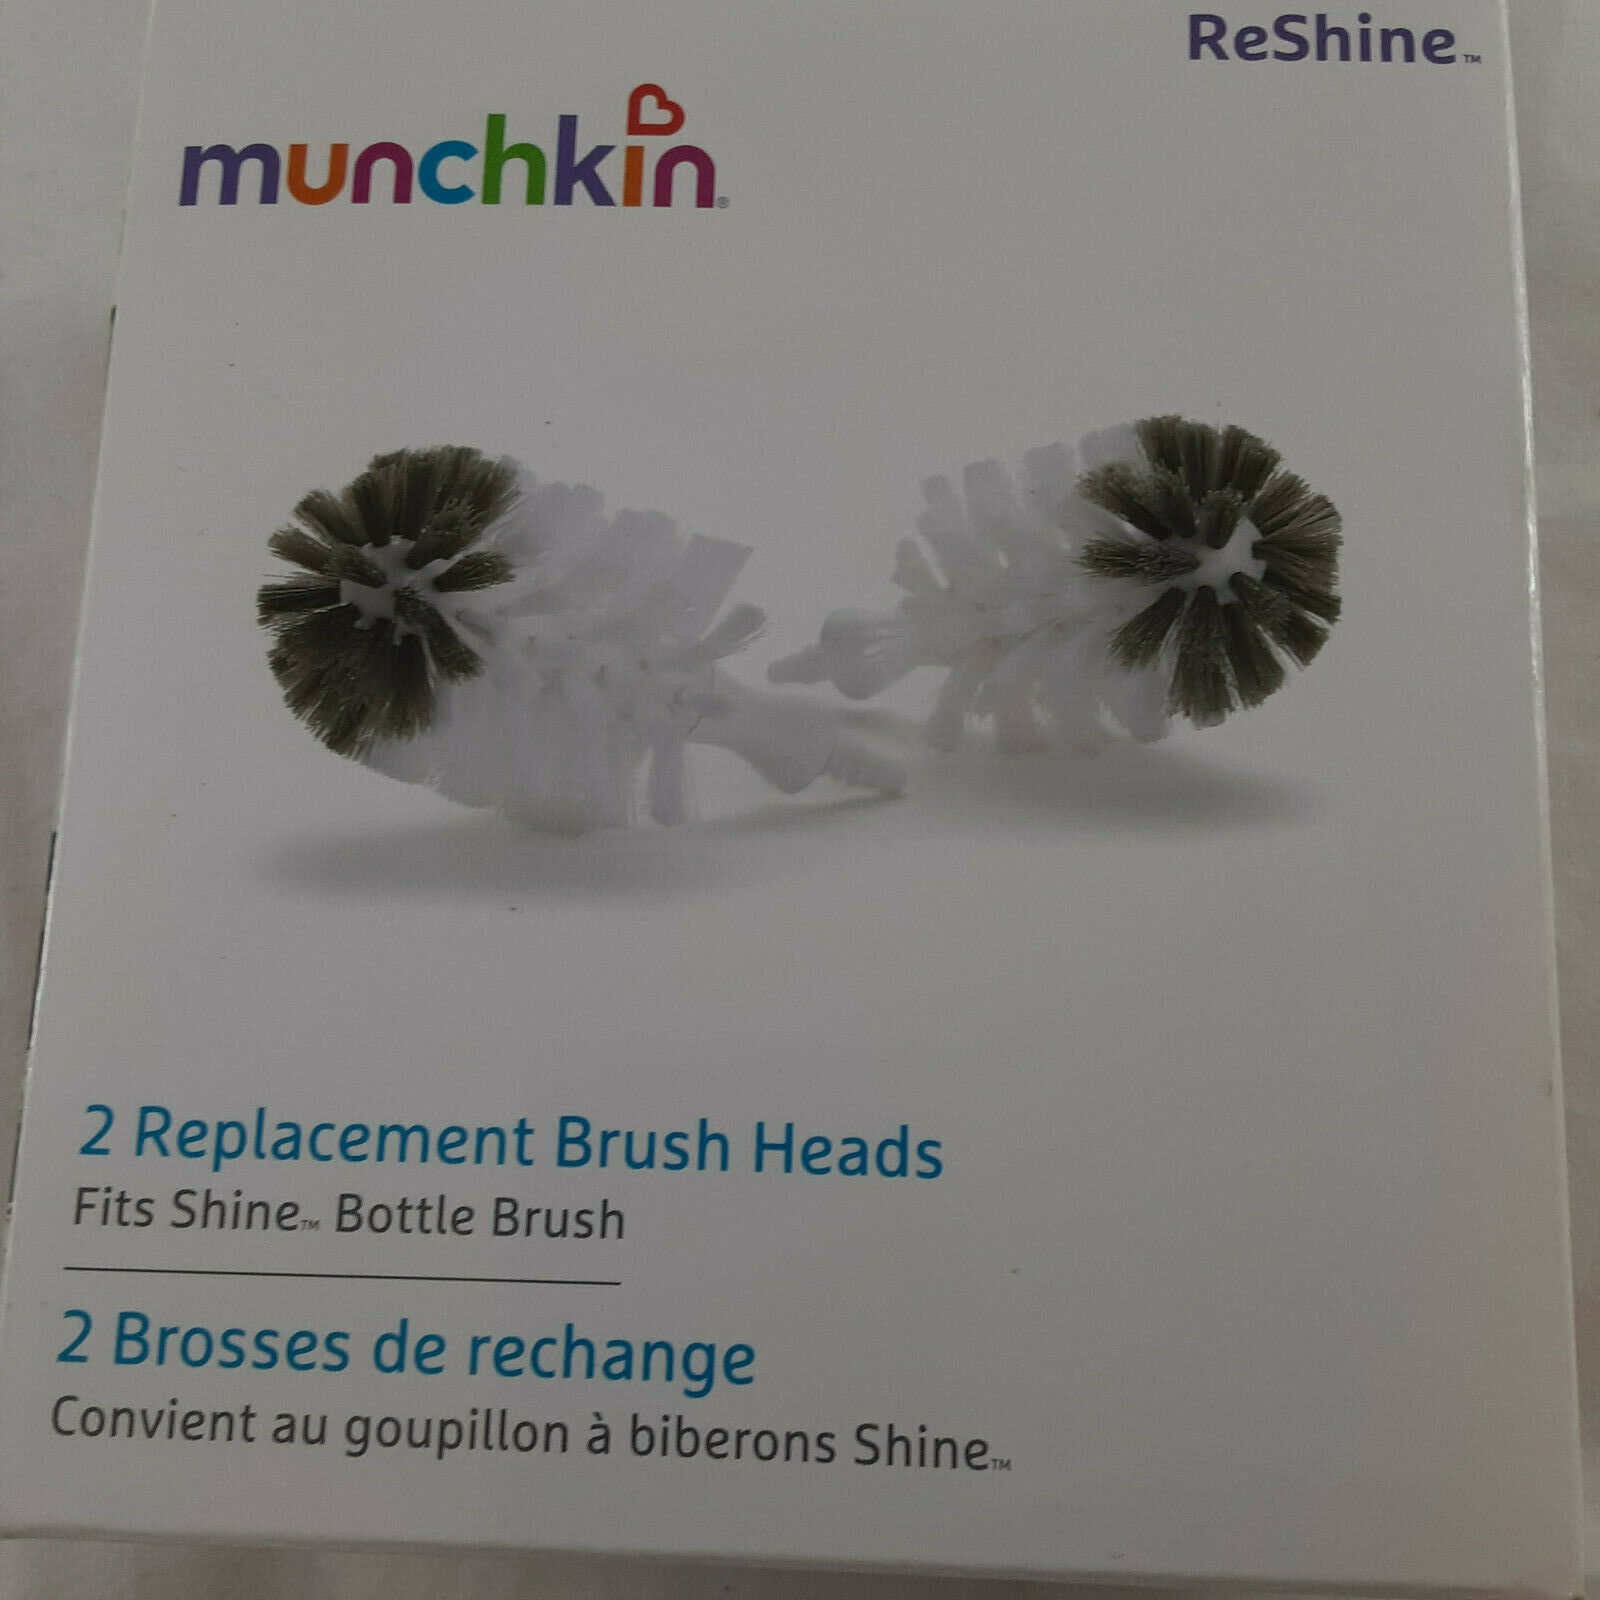 Primary image for Munchkin Fits Shine 2 Replacement Bottle Brush Heads Reshine New in box